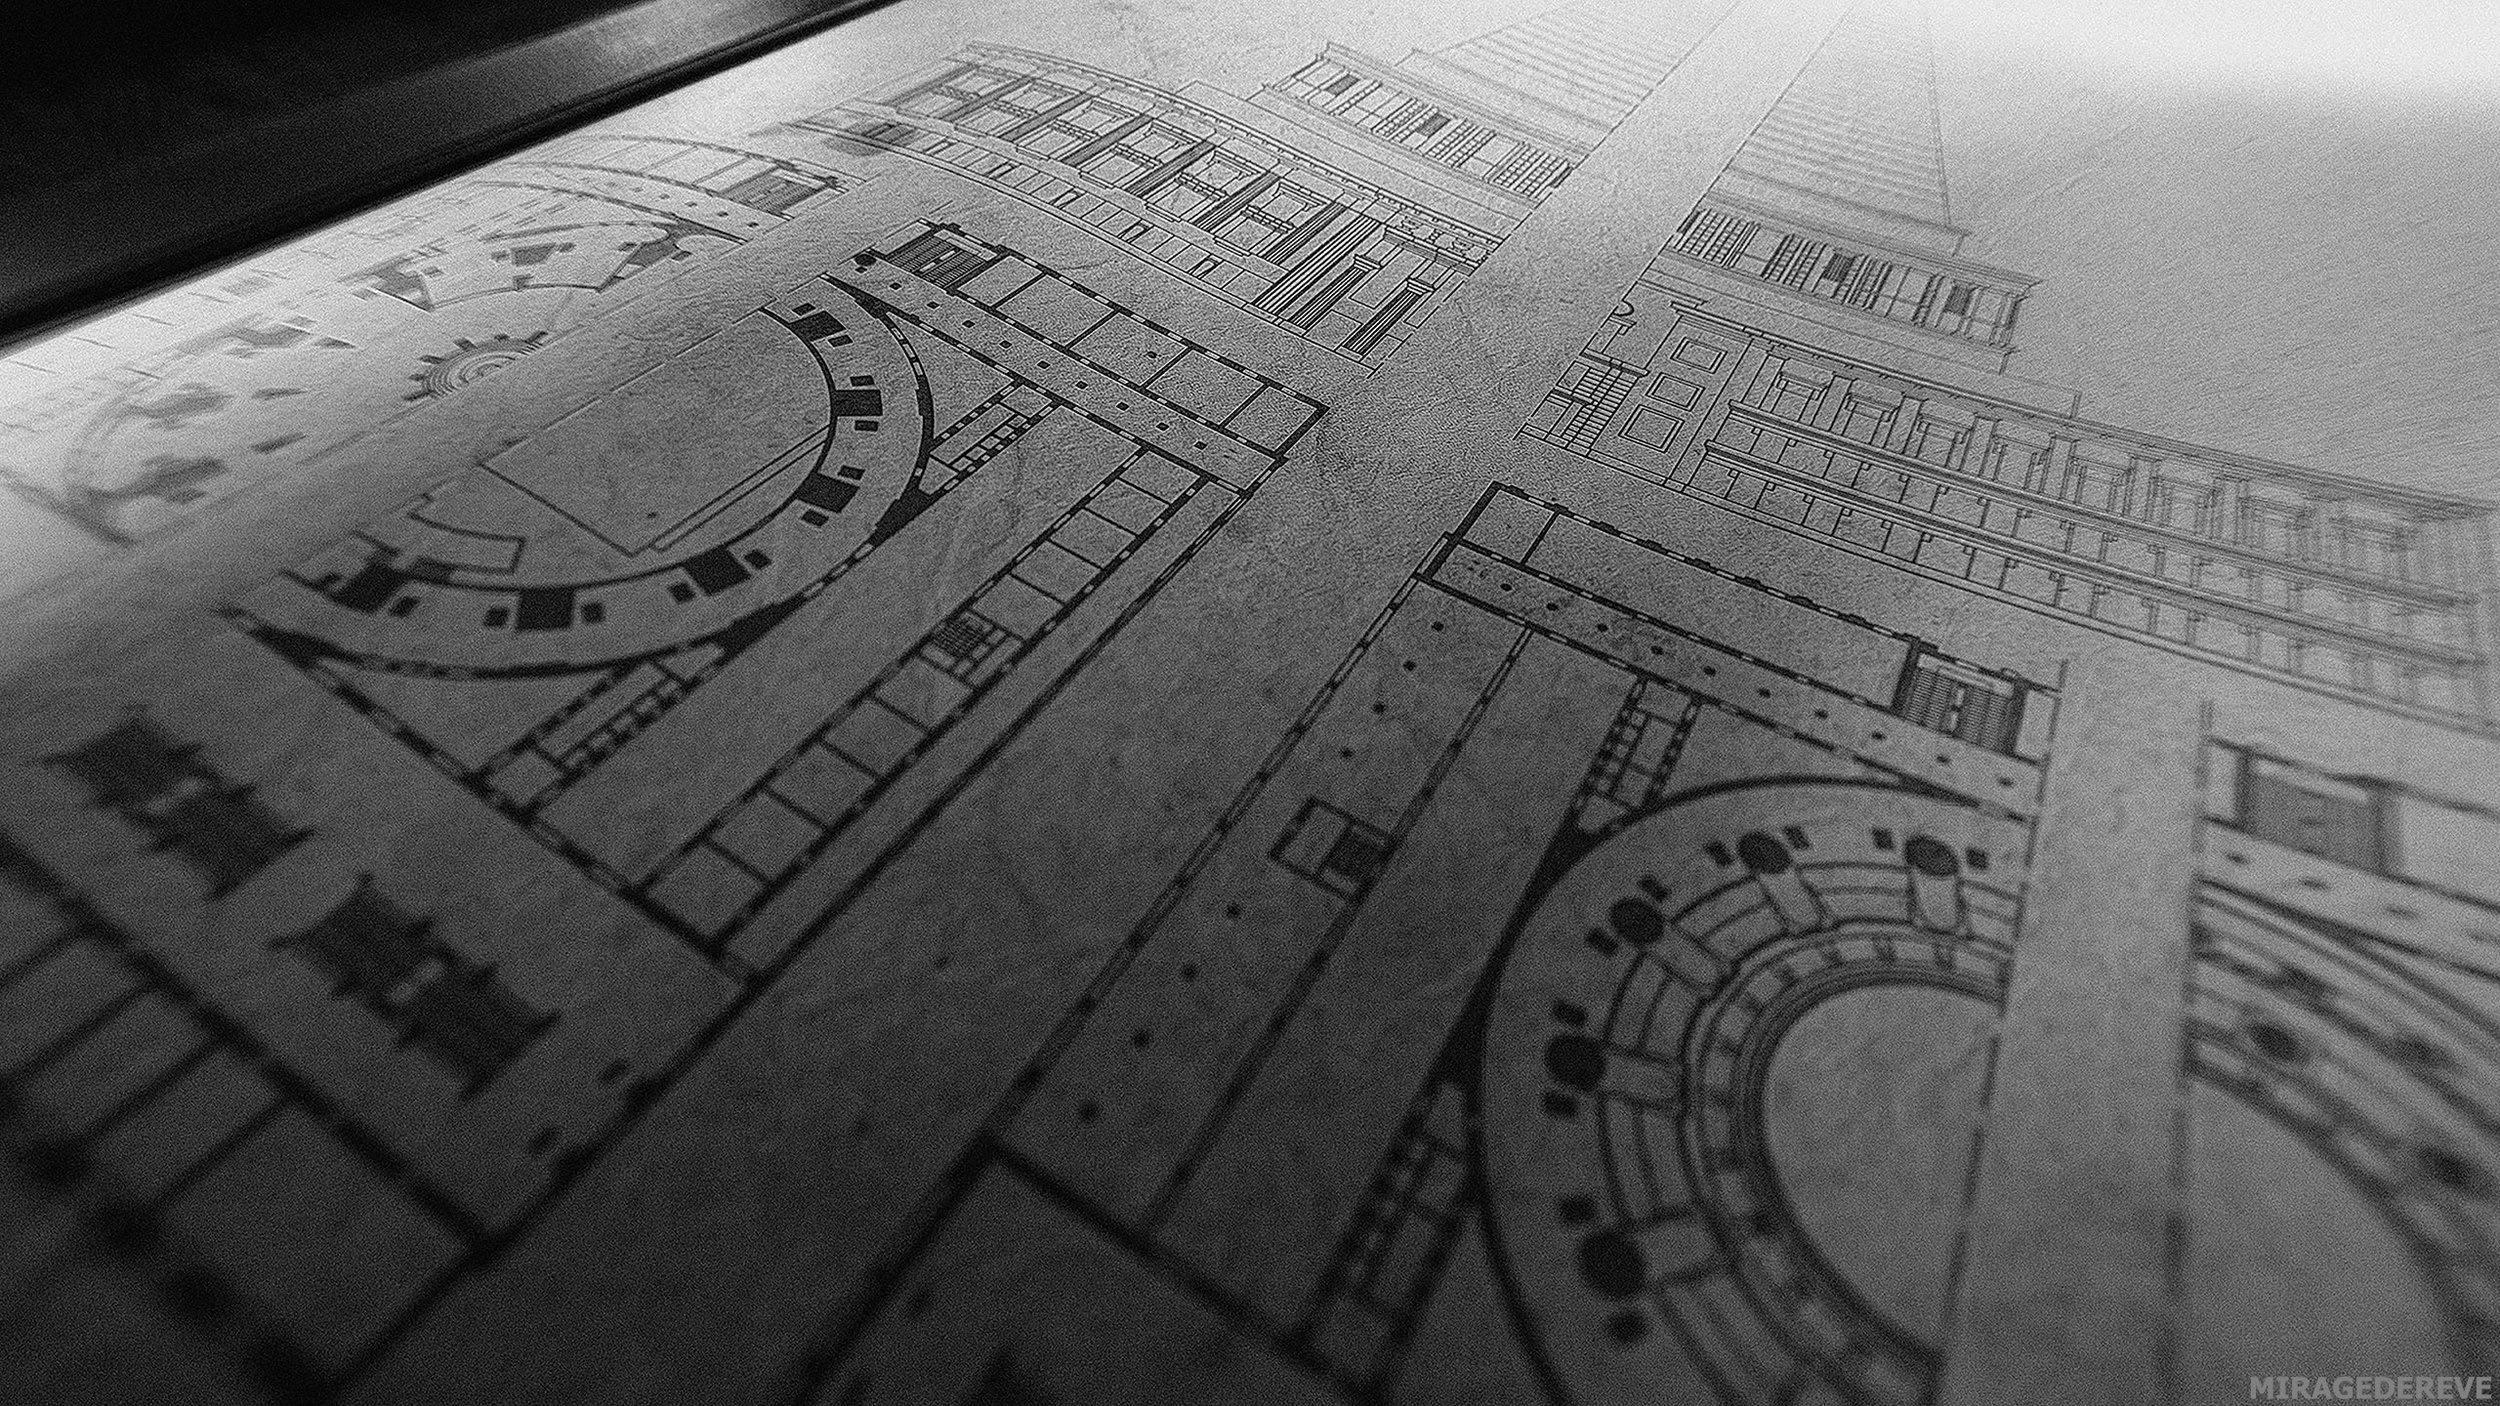 IMAGE 001:  Cathedral of Freedom, blueprints